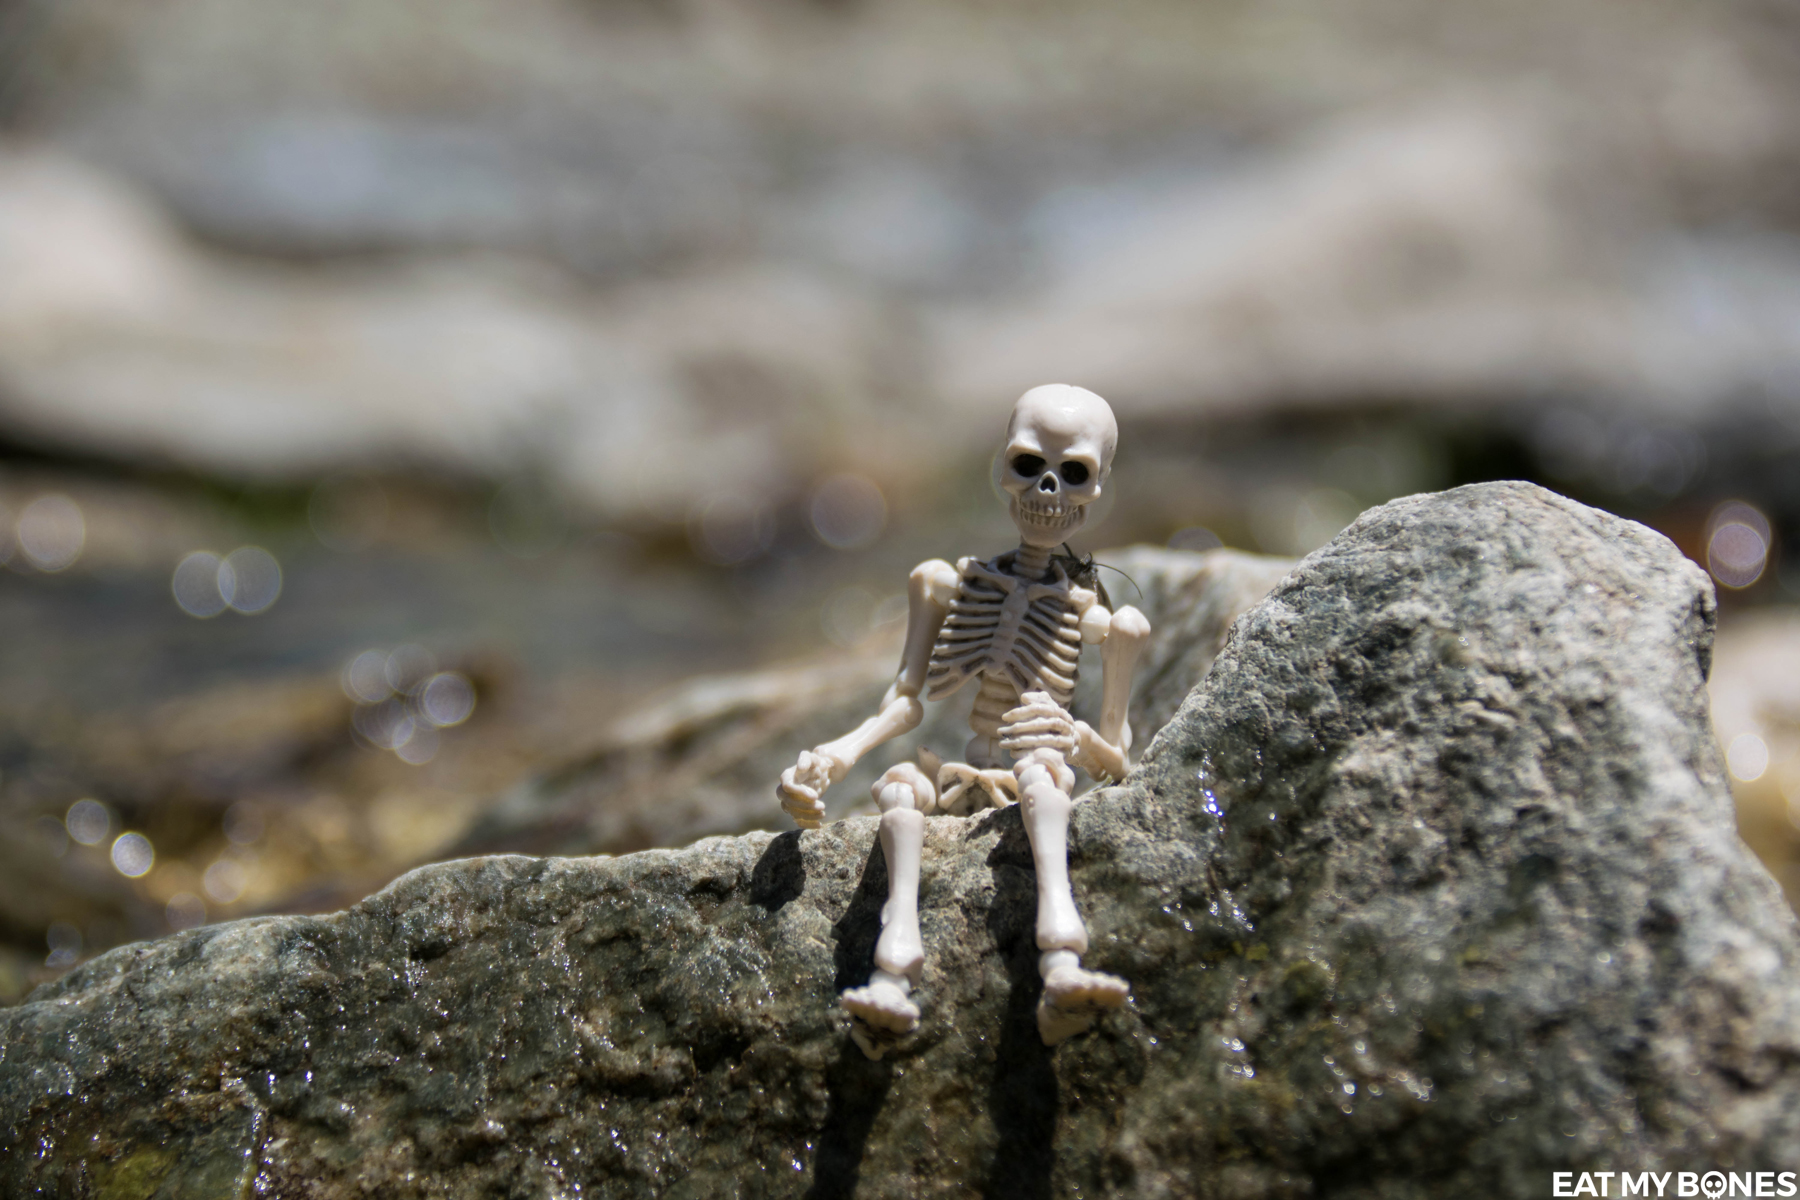 Mercantour hiking - Pose Skeleton - Toy photography - Miniature - Eat my Bones